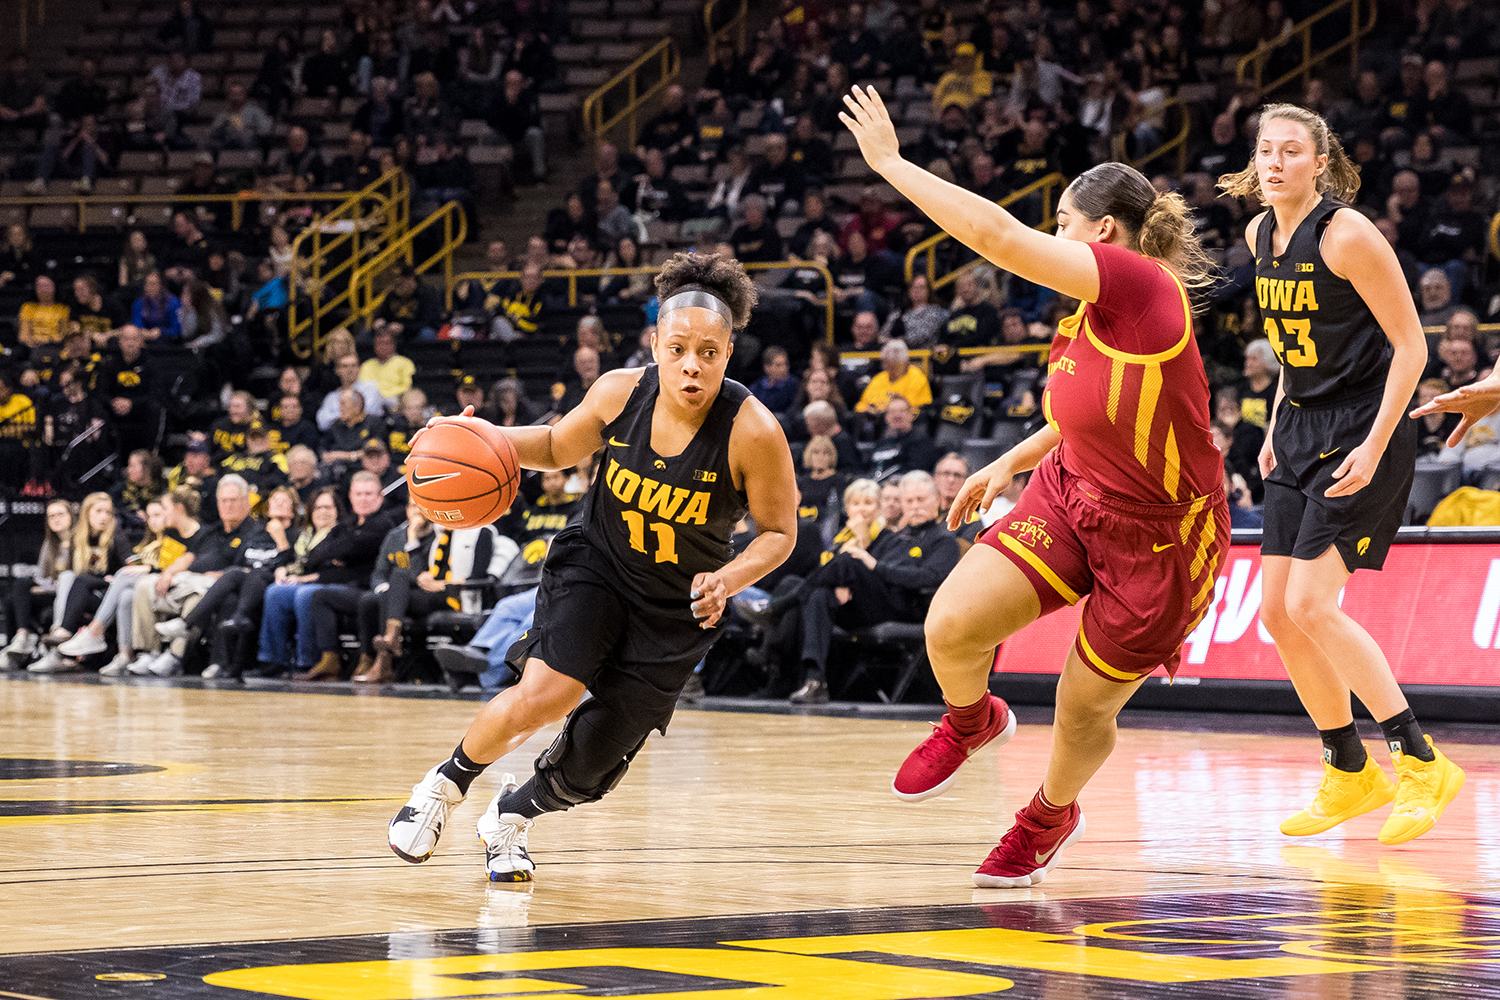 Iowa guard Tania Davis #11 dribbles into the lane during a women's basketball game against Iowa State University at Carver-Hawkeye Arena on Wednesday, Dec. 5, 2018. The Hawkeyes defeated the Cyclones 73-70.